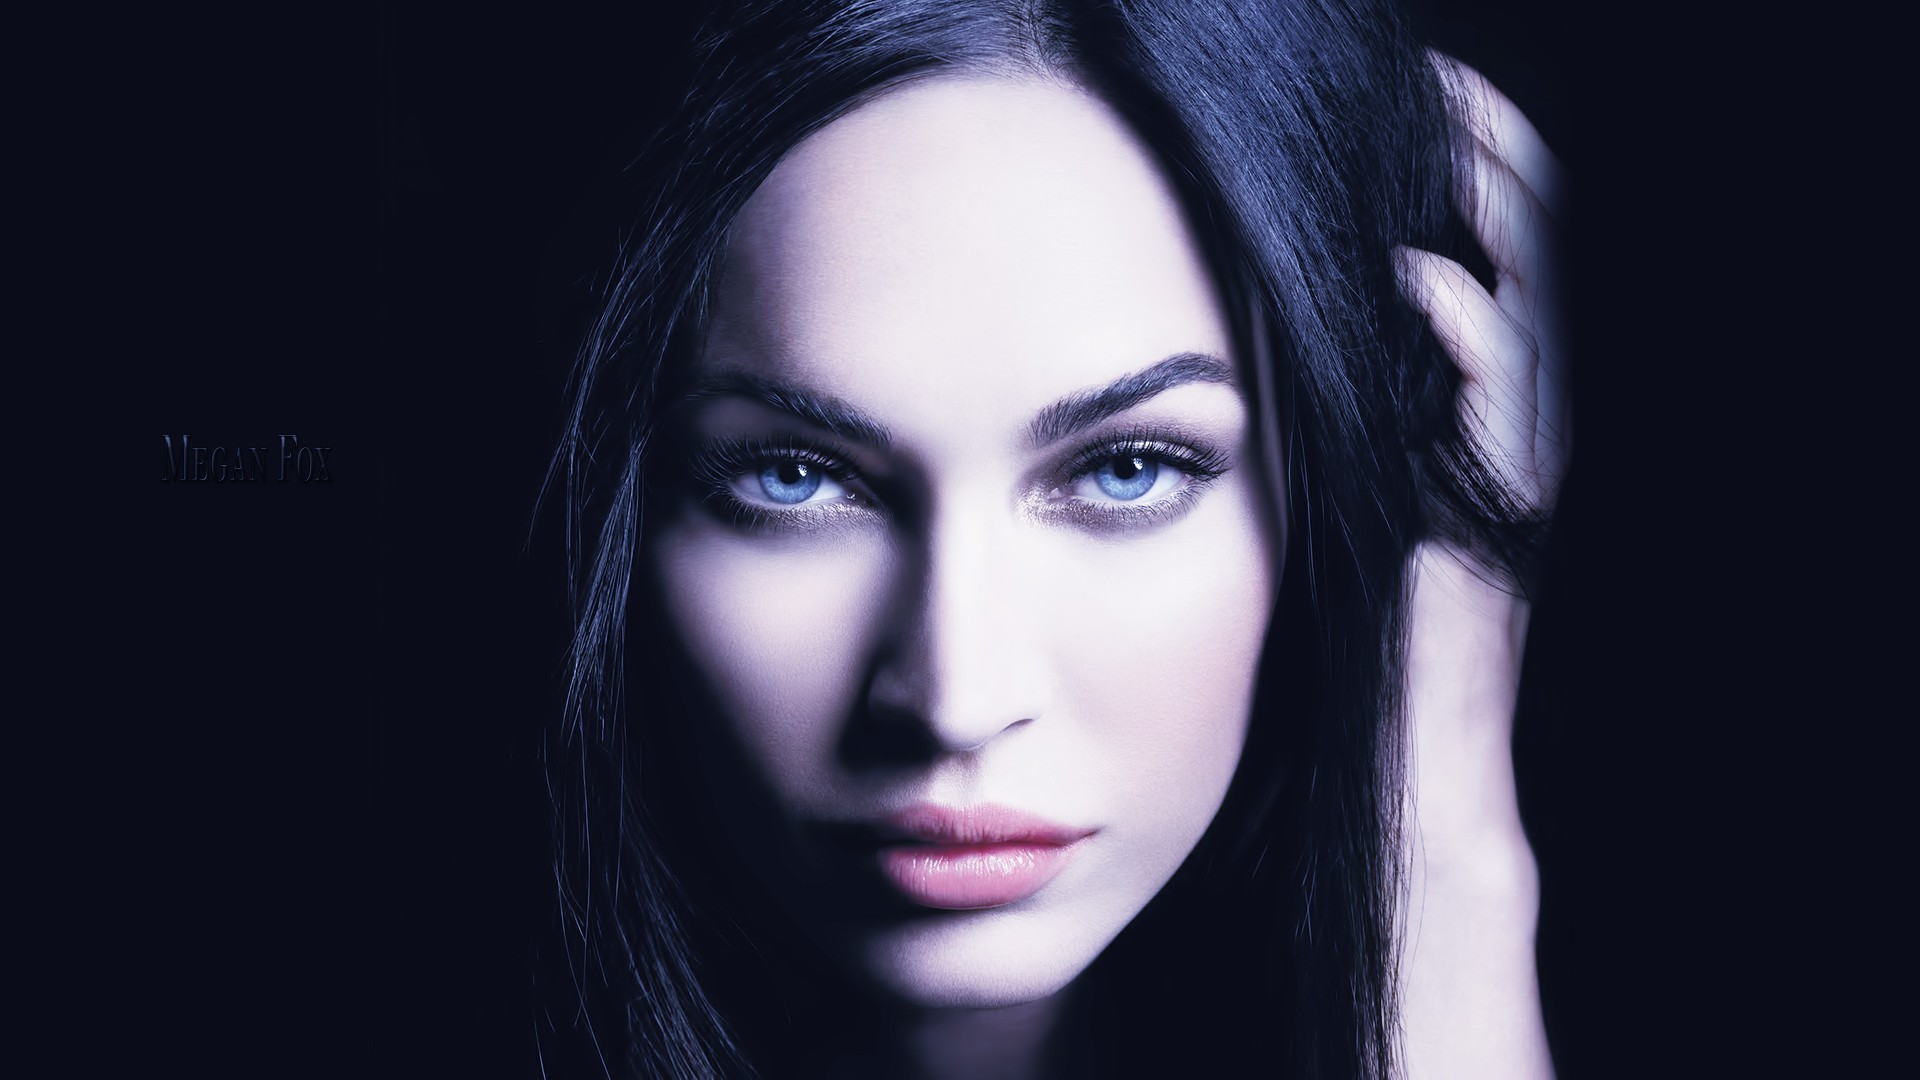 brunettes woman eyes dark HD Wallpaper